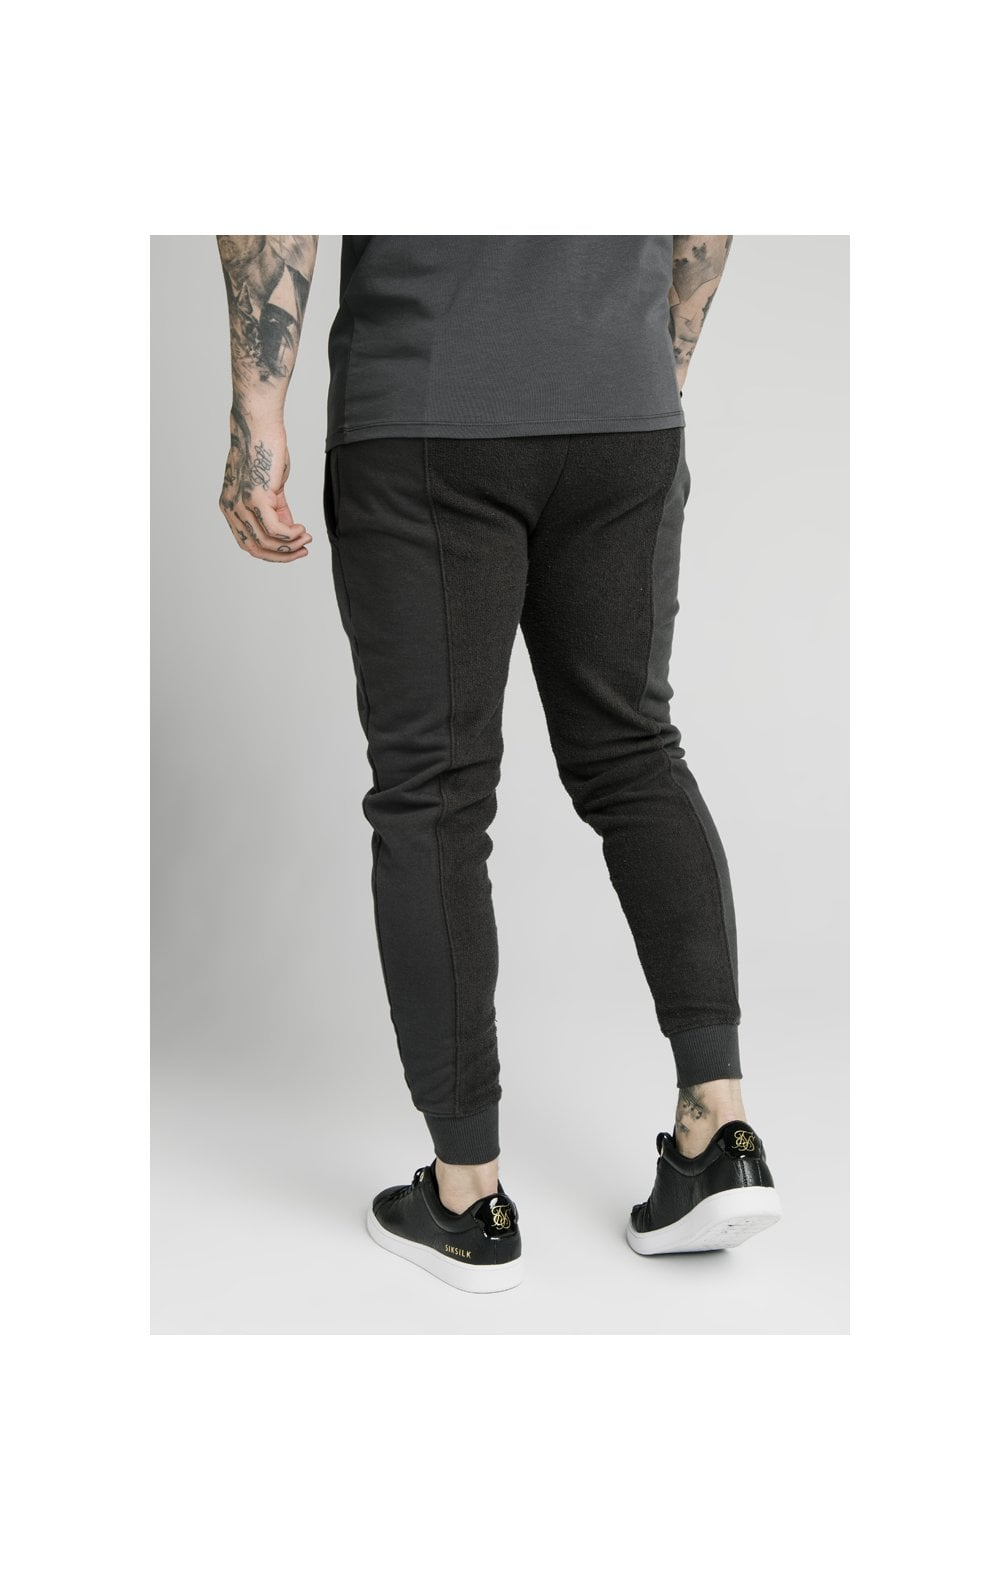 SikSilk Half & Half Fitted Jogger - Washed Grey (2)